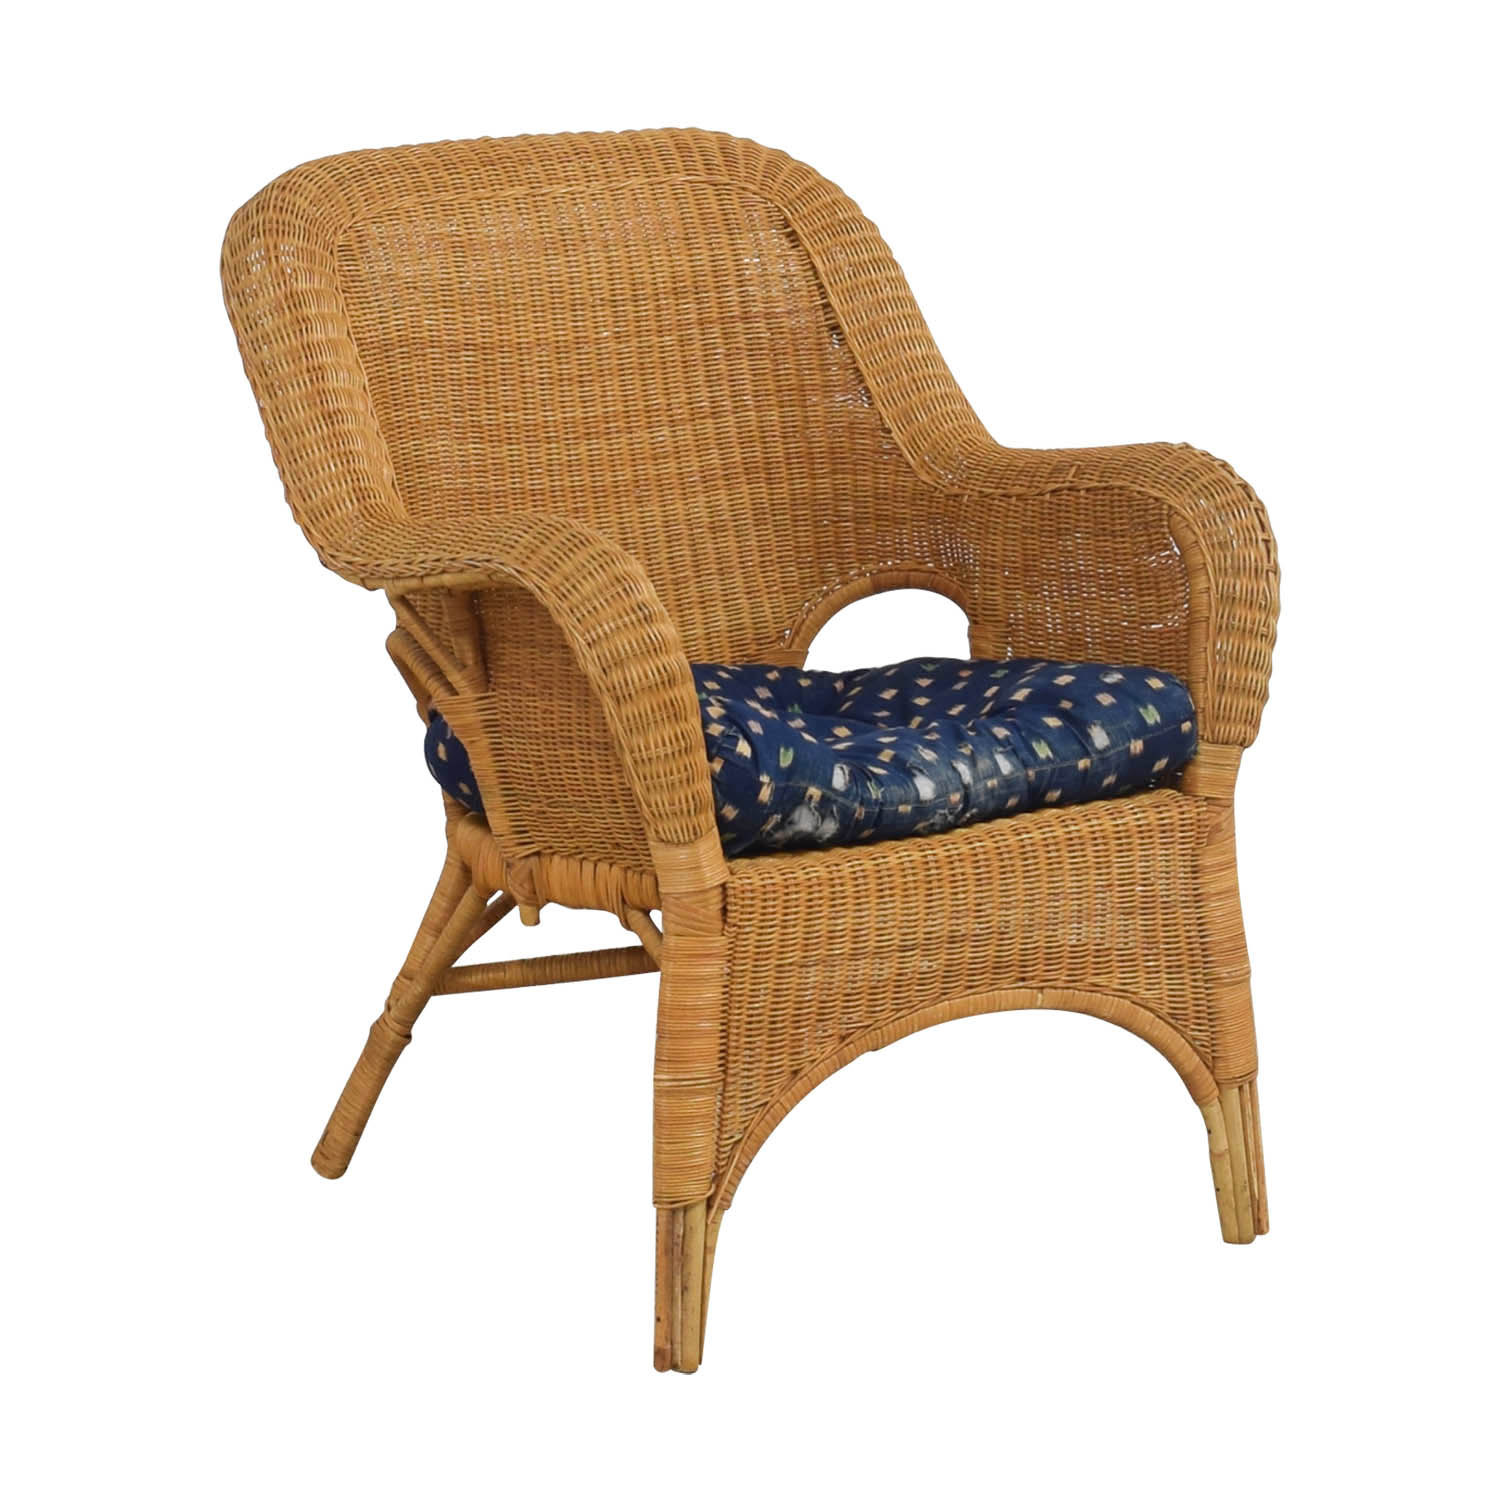 90 Off Natural Wicker Armchair With Cushion Chairs